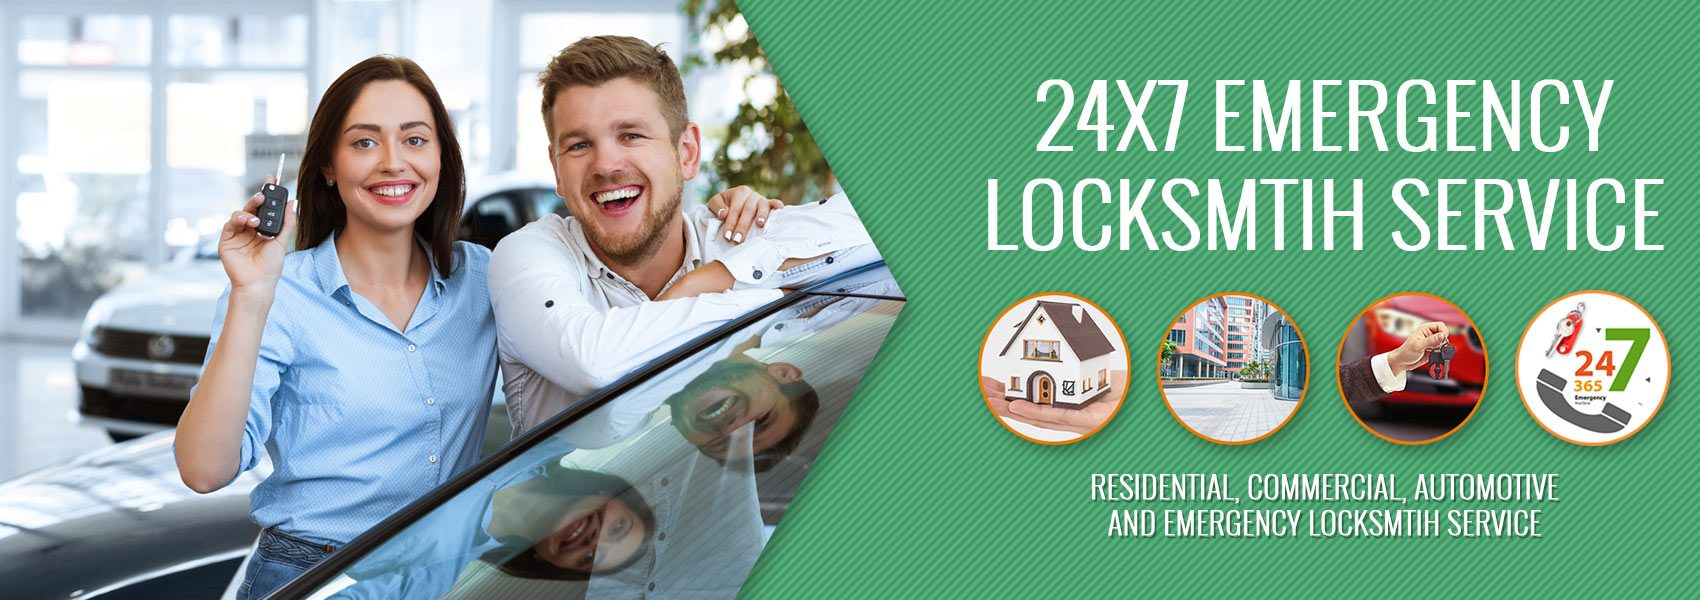 Amber Locksmith Store Raleigh, NC 919-753-1540